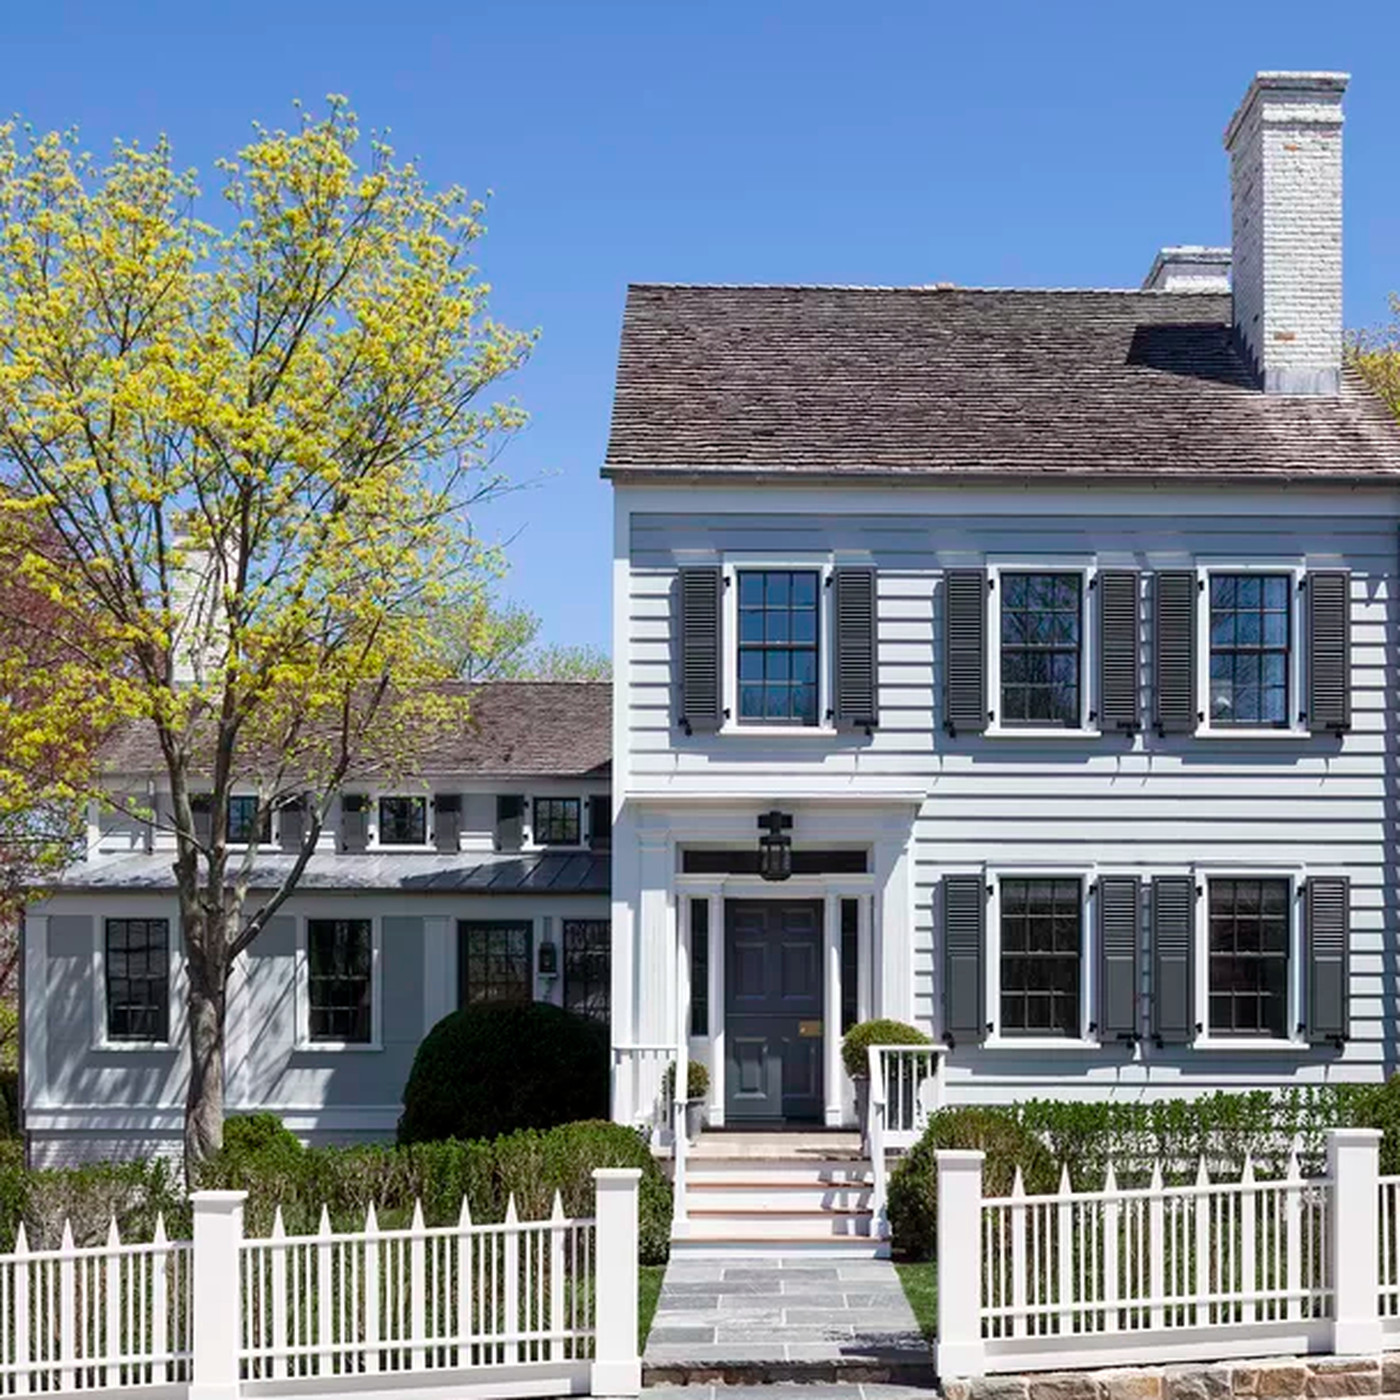 Restoring A Historic House 8 Tips And Tricks Before Getting Started Curbed